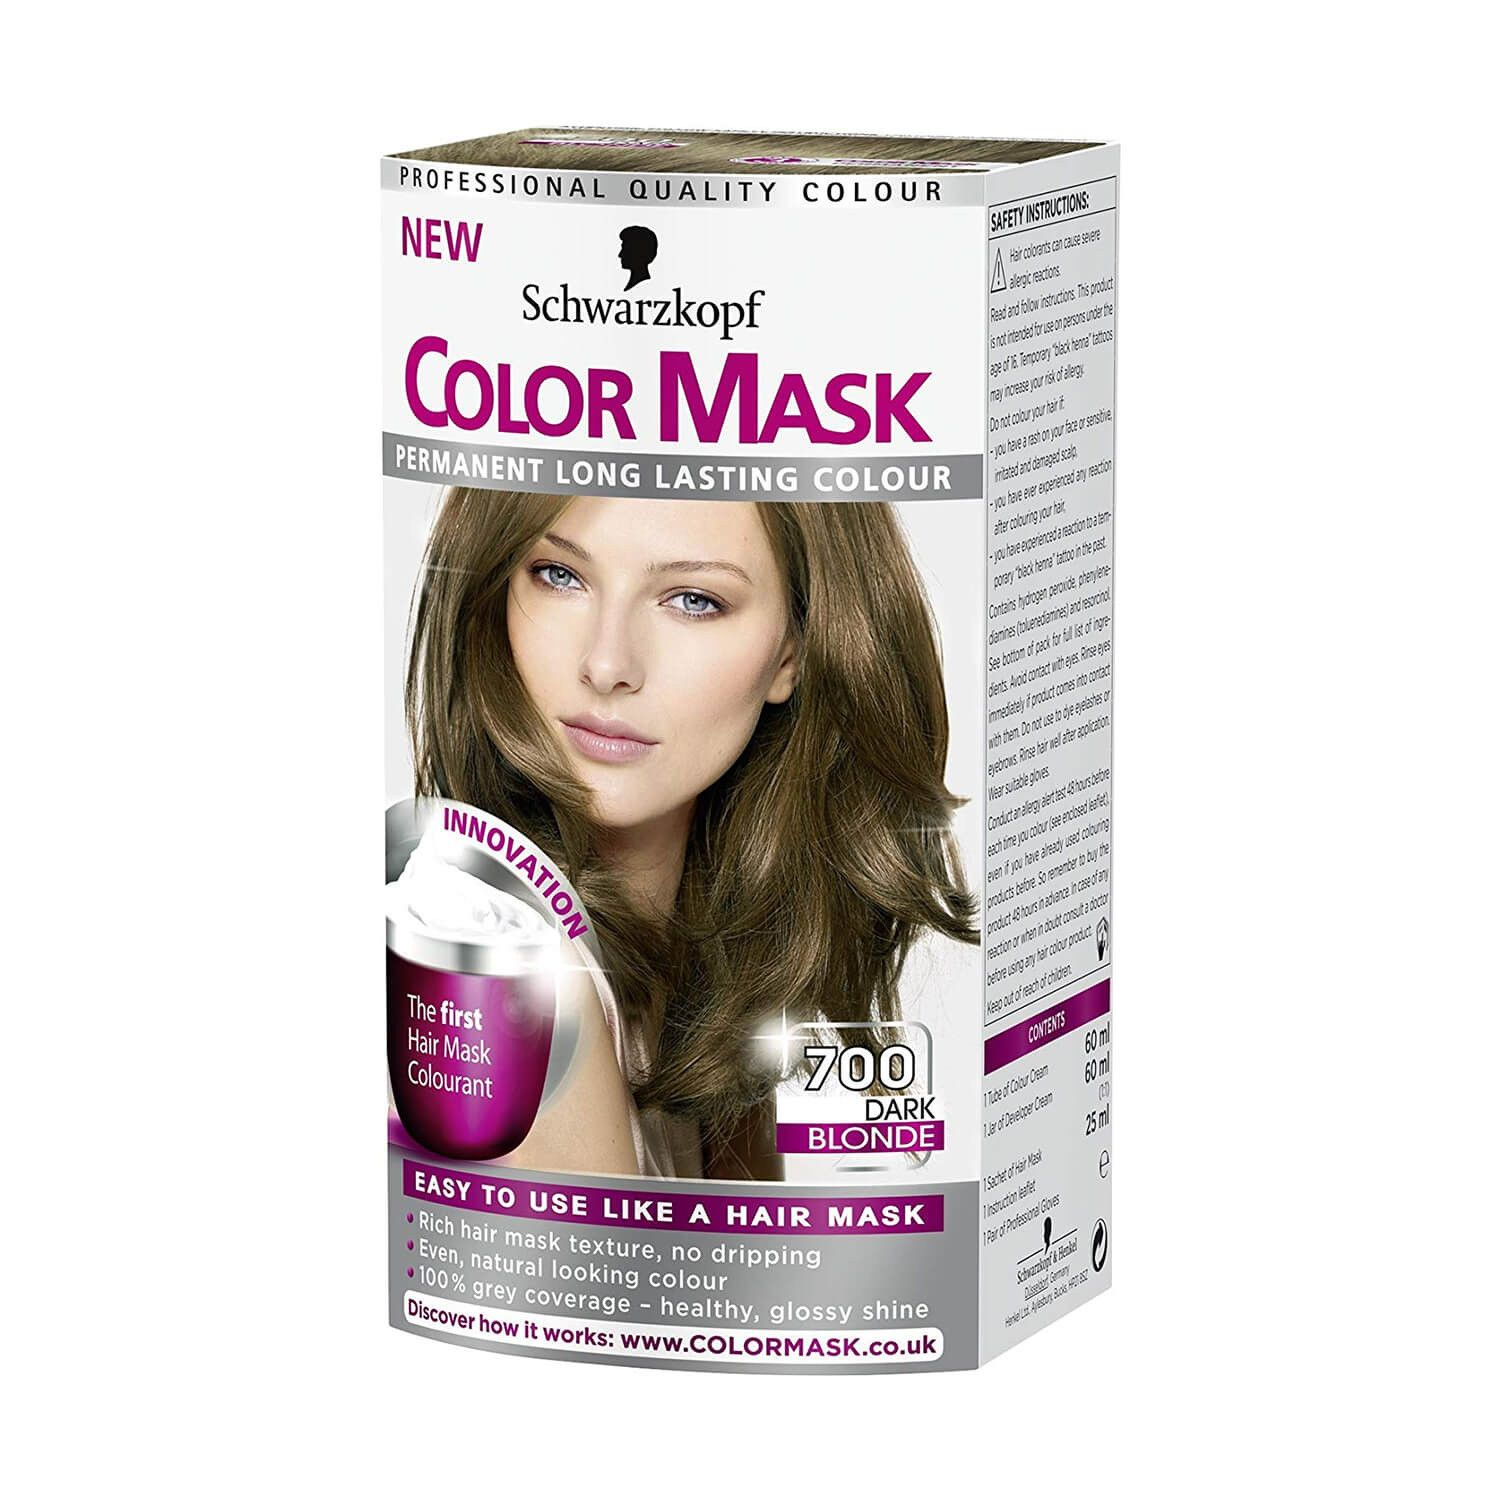 Schwarzkopf Colour Mask 700 Dark Blonde Hair Dye Dyed Blonde